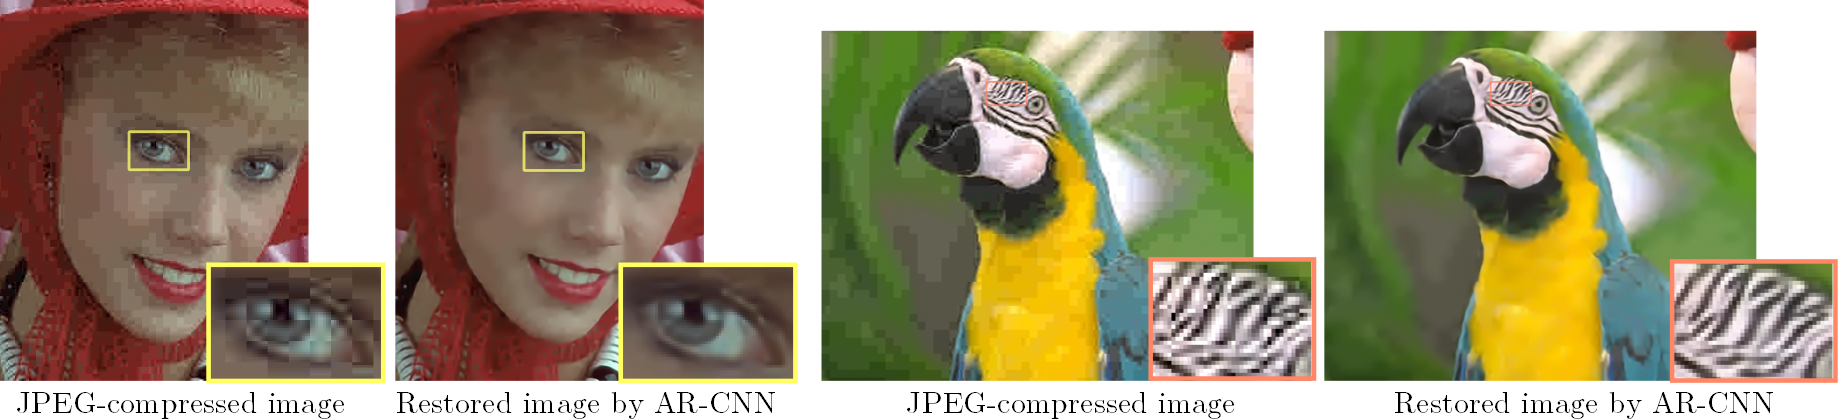 Compression Artifacts Reduction by a Deep Convolutional Network